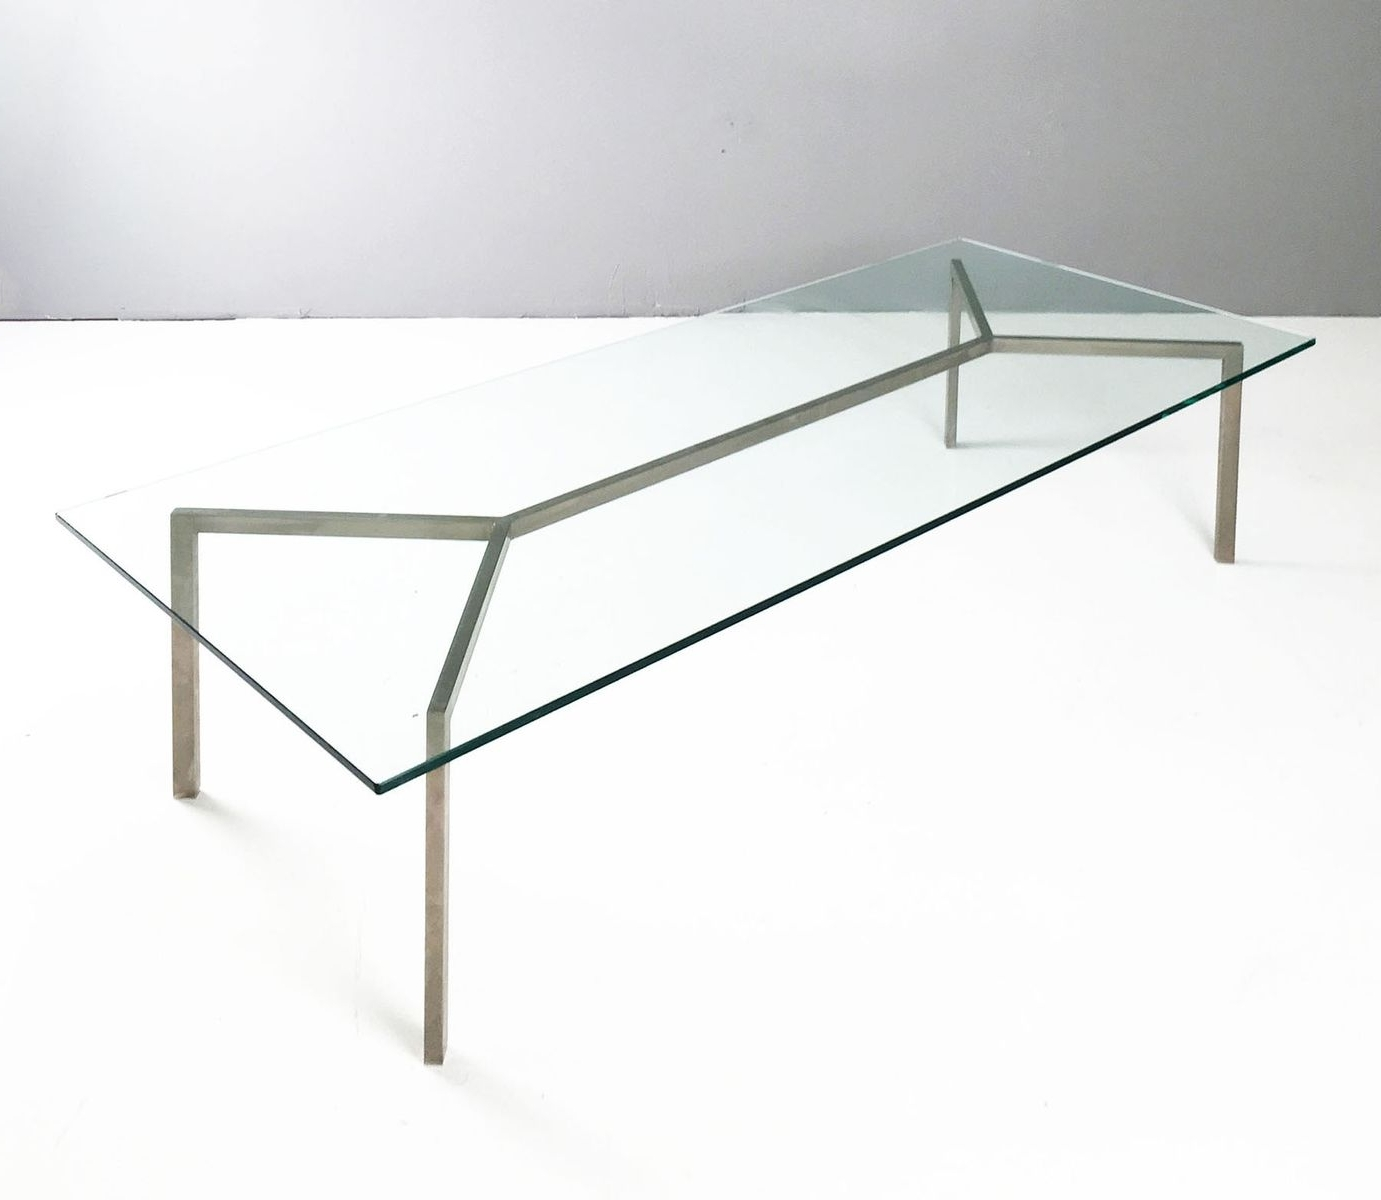 Widely Used Minimalist Coffee Tables Within Minimalist Glass & Chrome Coffee Table, 1960S For Sale At Pamono (View 20 of 20)